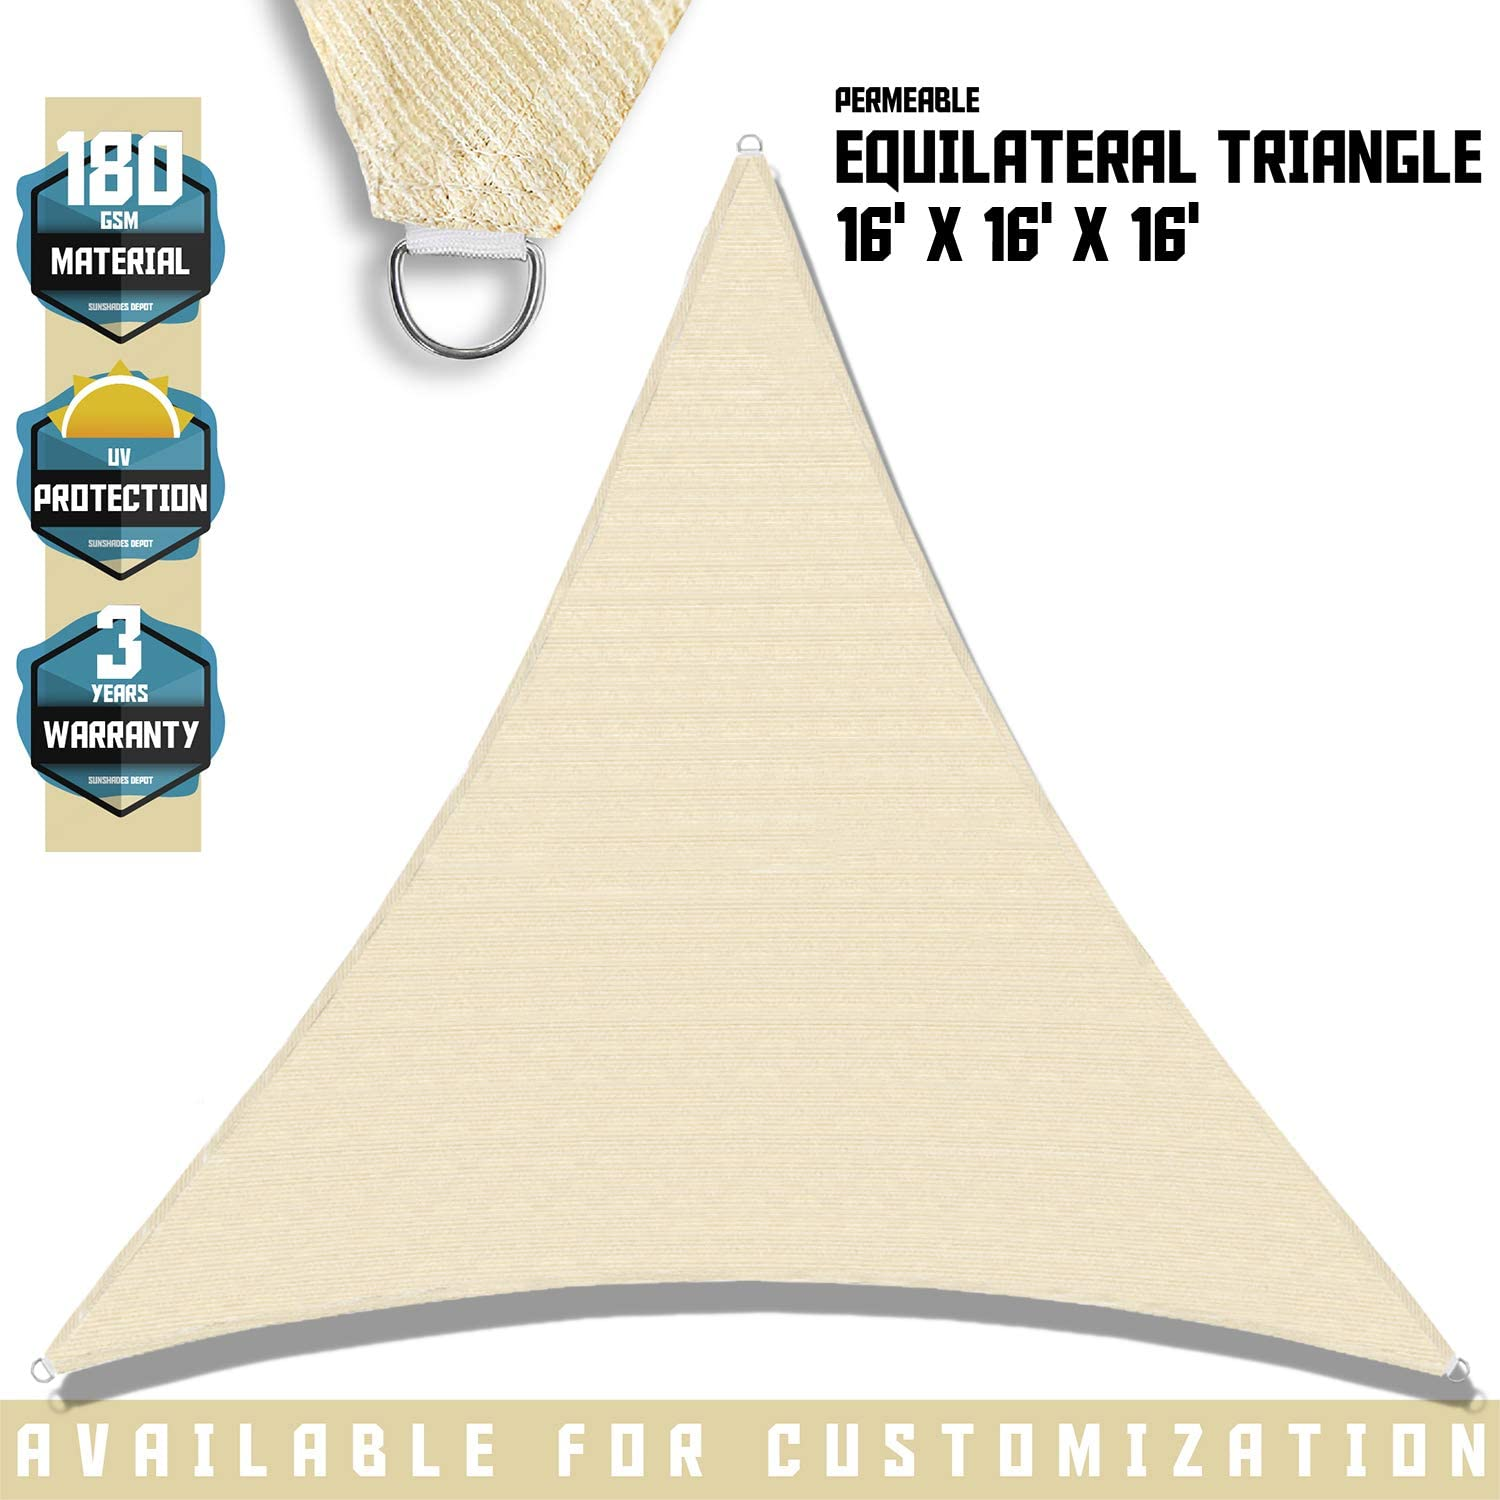 TANG Sunshades Depot 16 x16 x16 Sun Shade Sail 180 GSM Equilateral Triangle Permeable Canopy Tan Beige Custom Commercial Standard